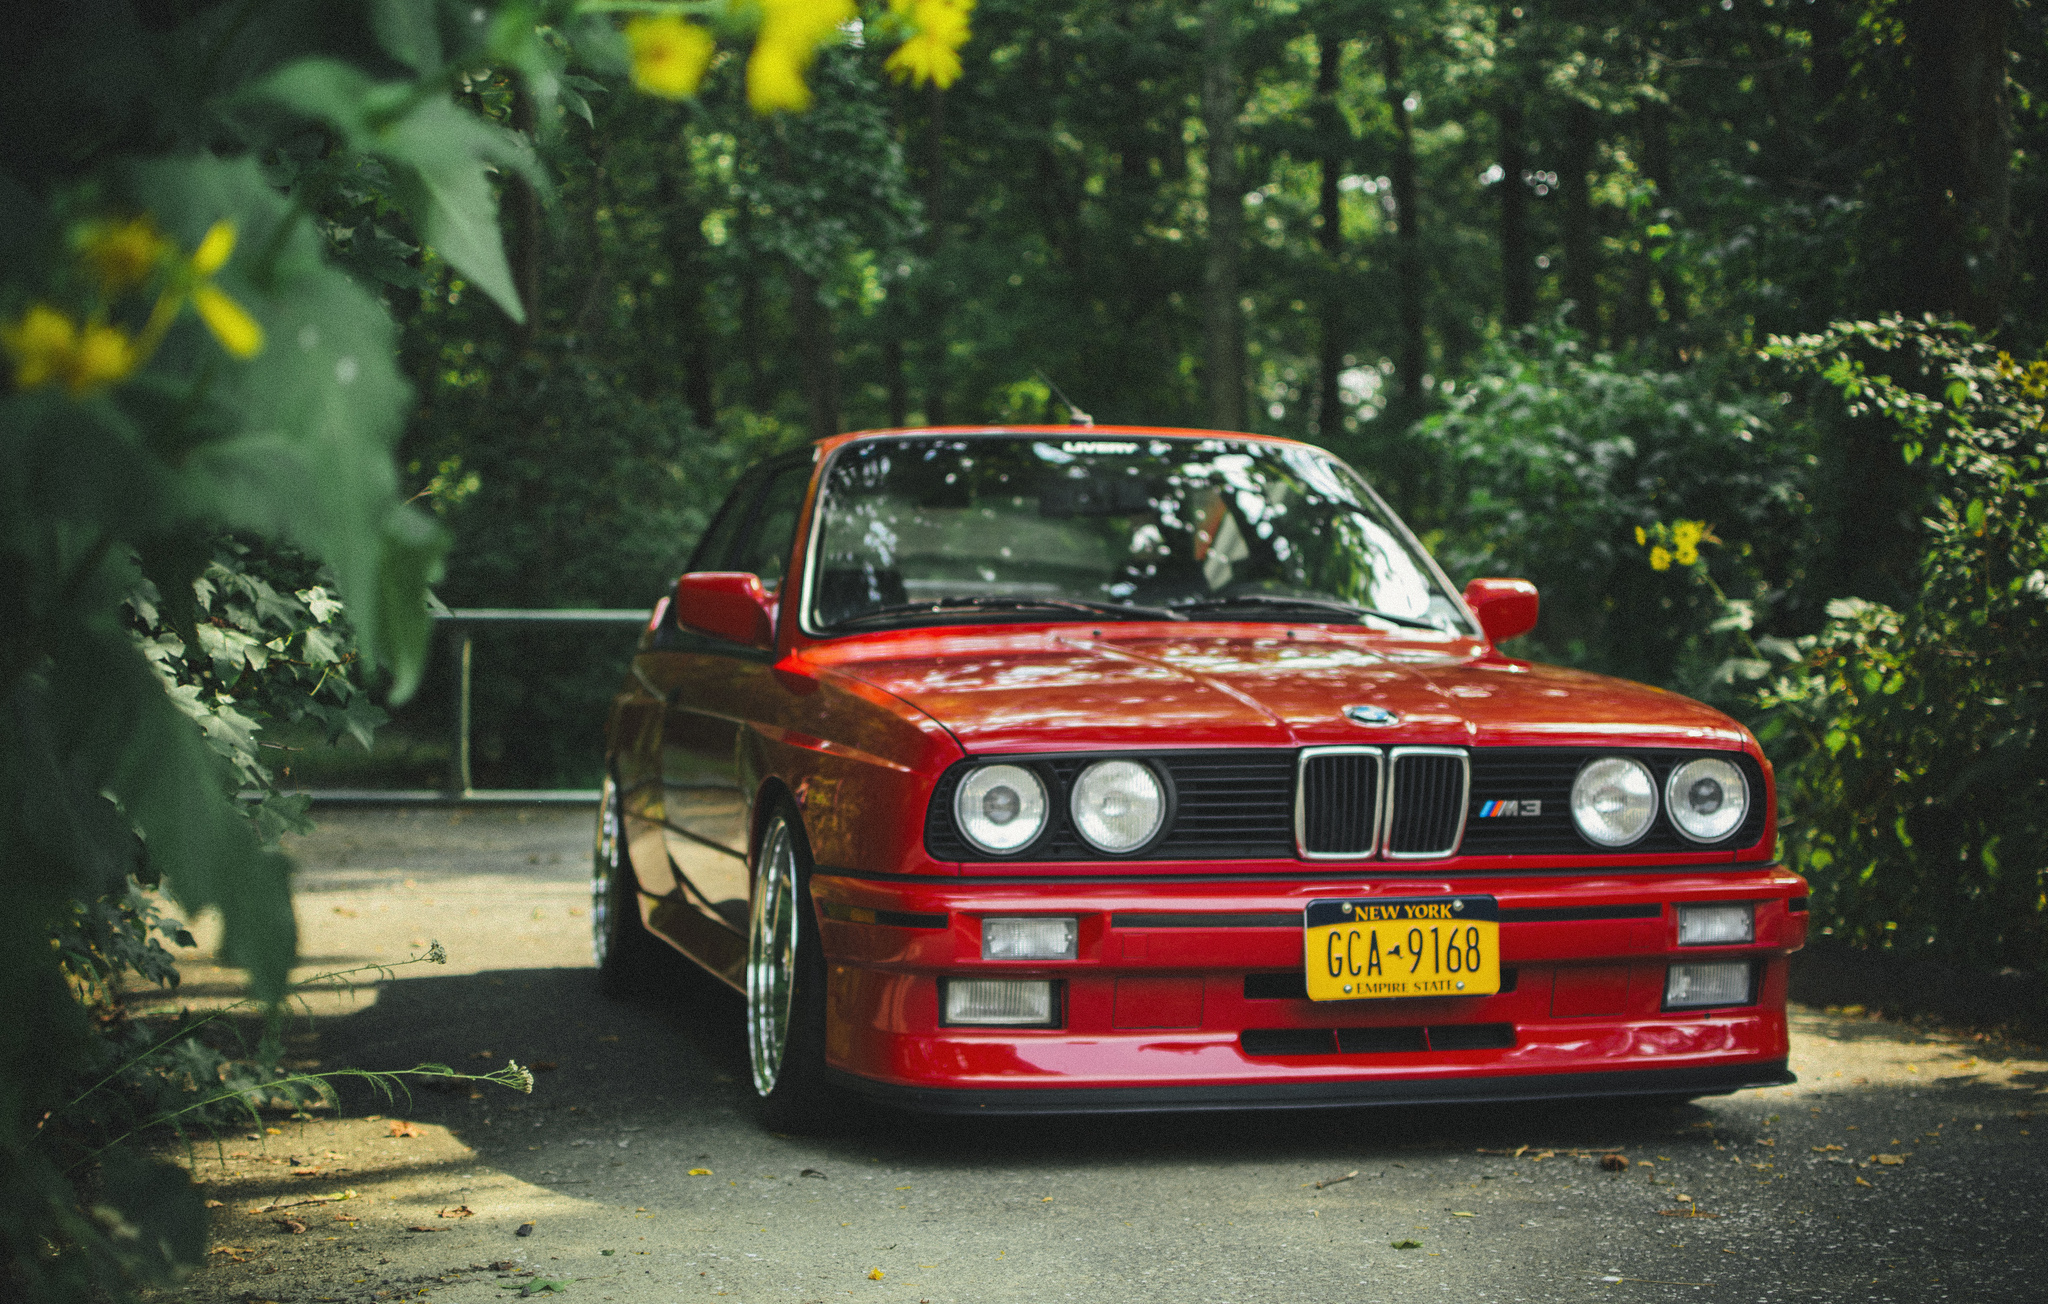 E30 M3 Wallpaper Wallpapersafari